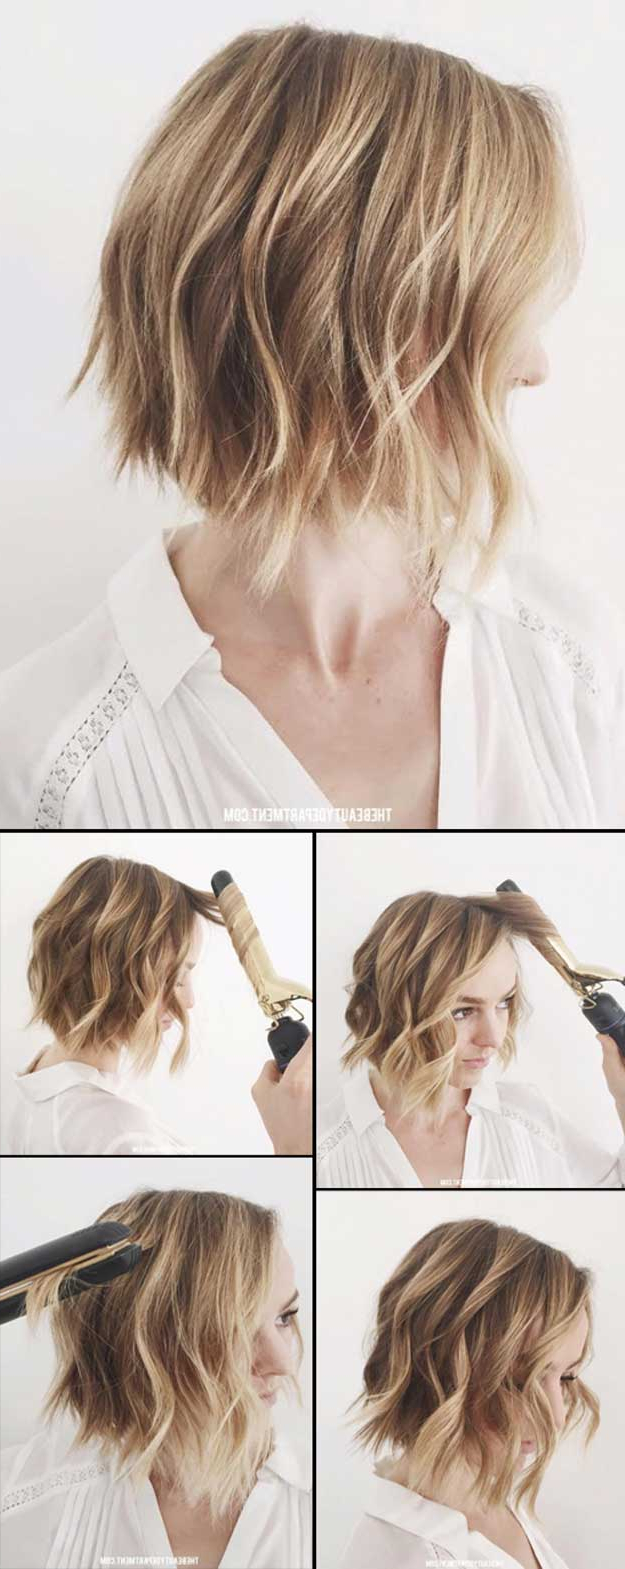 33 Best Hairstyles For Teens – The Goddess With Short Hairstyles For Juniors (View 1 of 25)